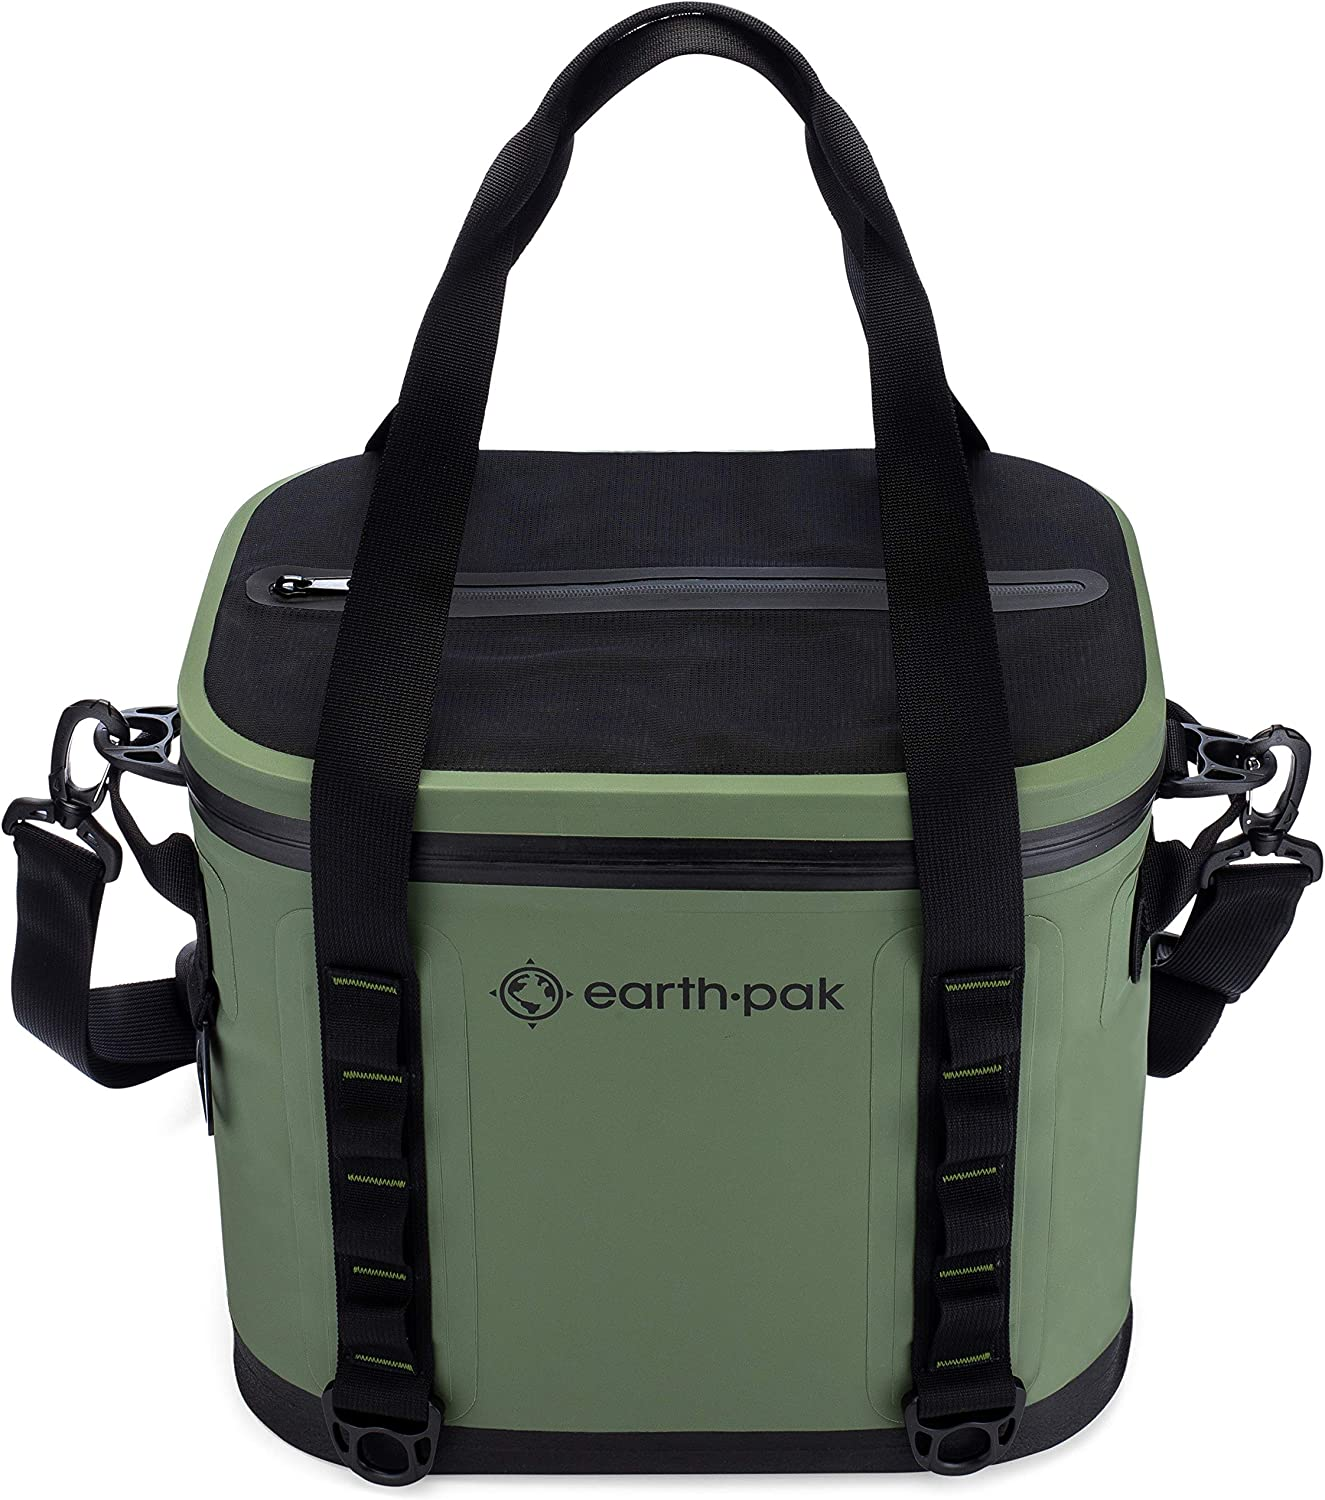 Earth Pak Heavy Duty Waterproof 20-Can Soft Cooler Bag for Camping, Sports, Fishing, Kayaking, Beach Trips – Mesh Tote Insert Included